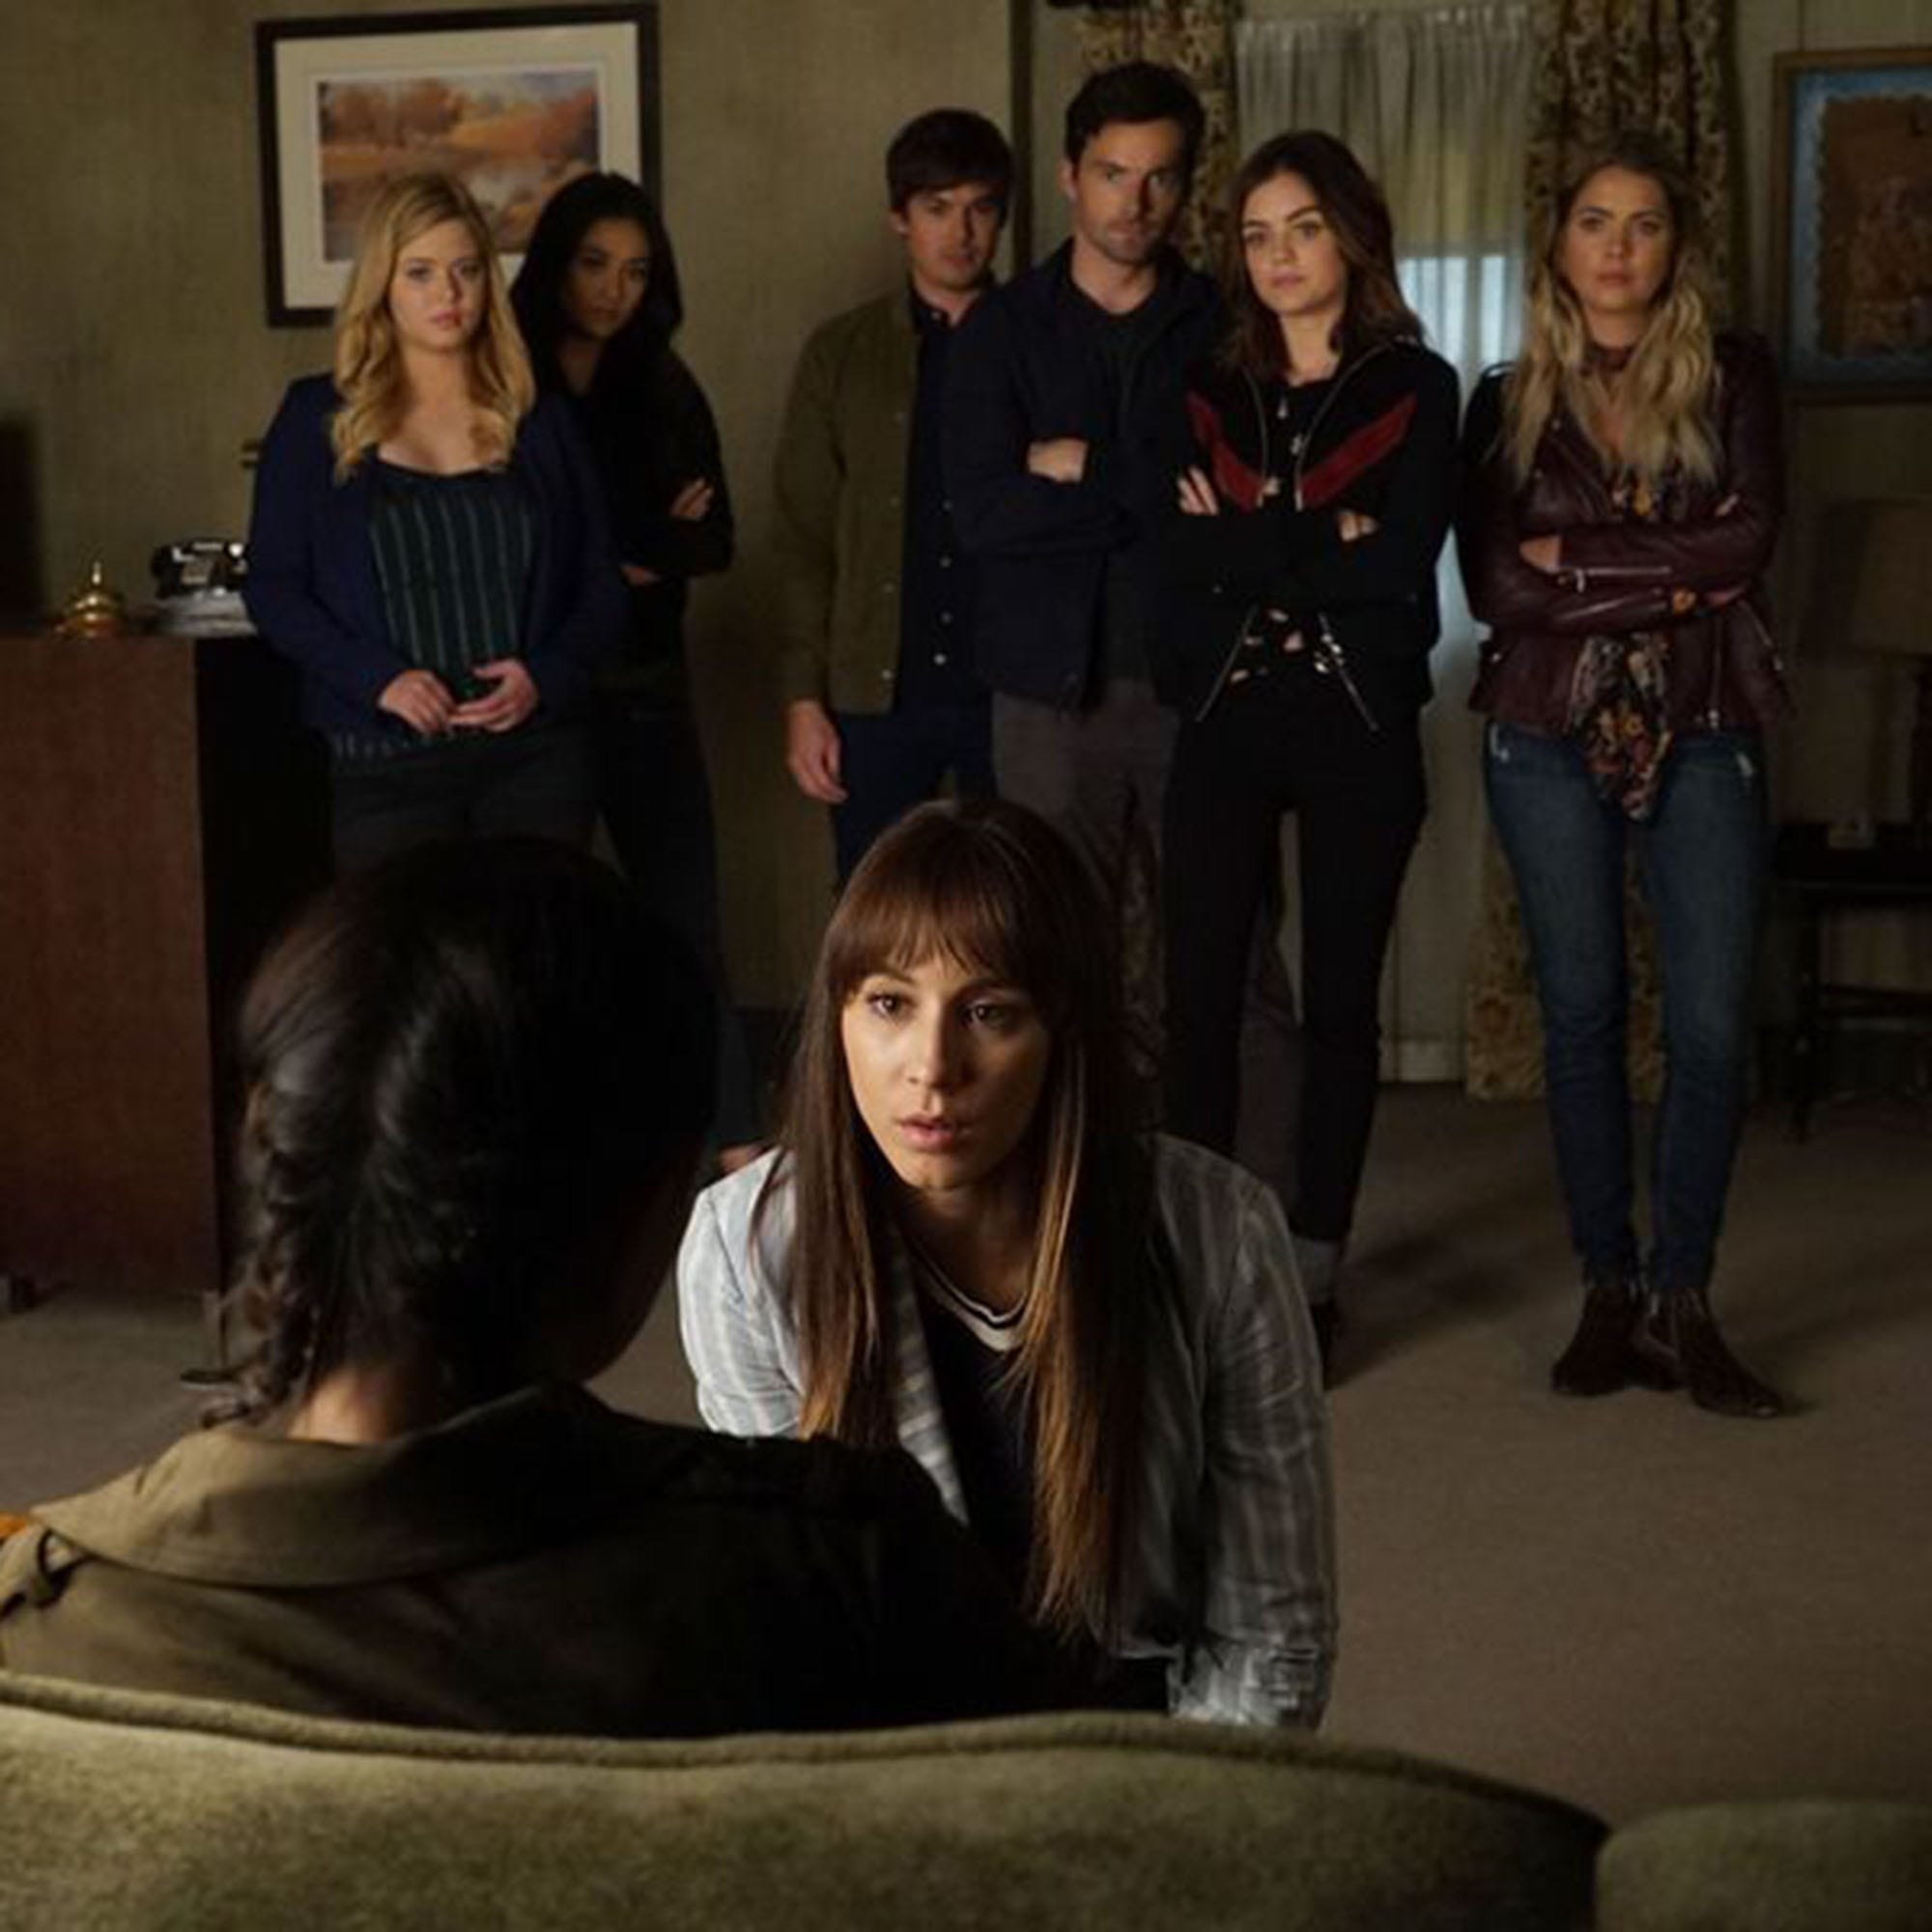 Pretty Little Liars Series Alternate Ending, Theory